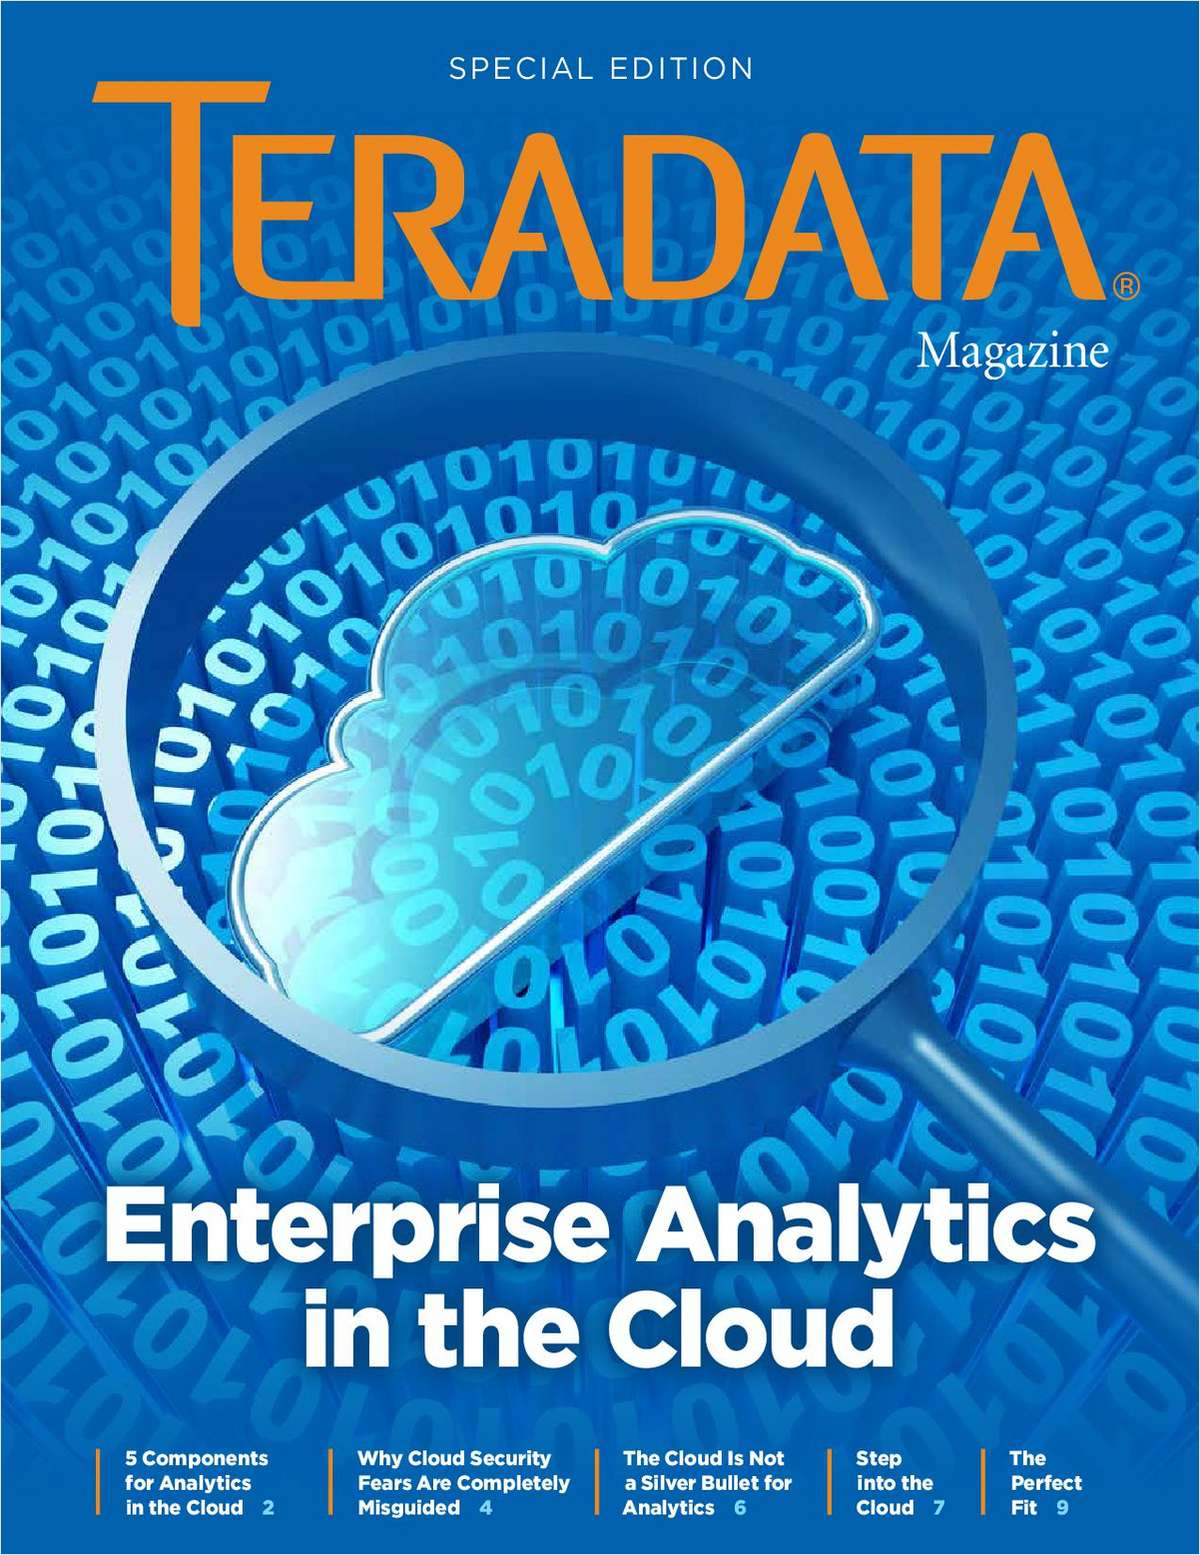 Enterprise Analytics in the Cloud